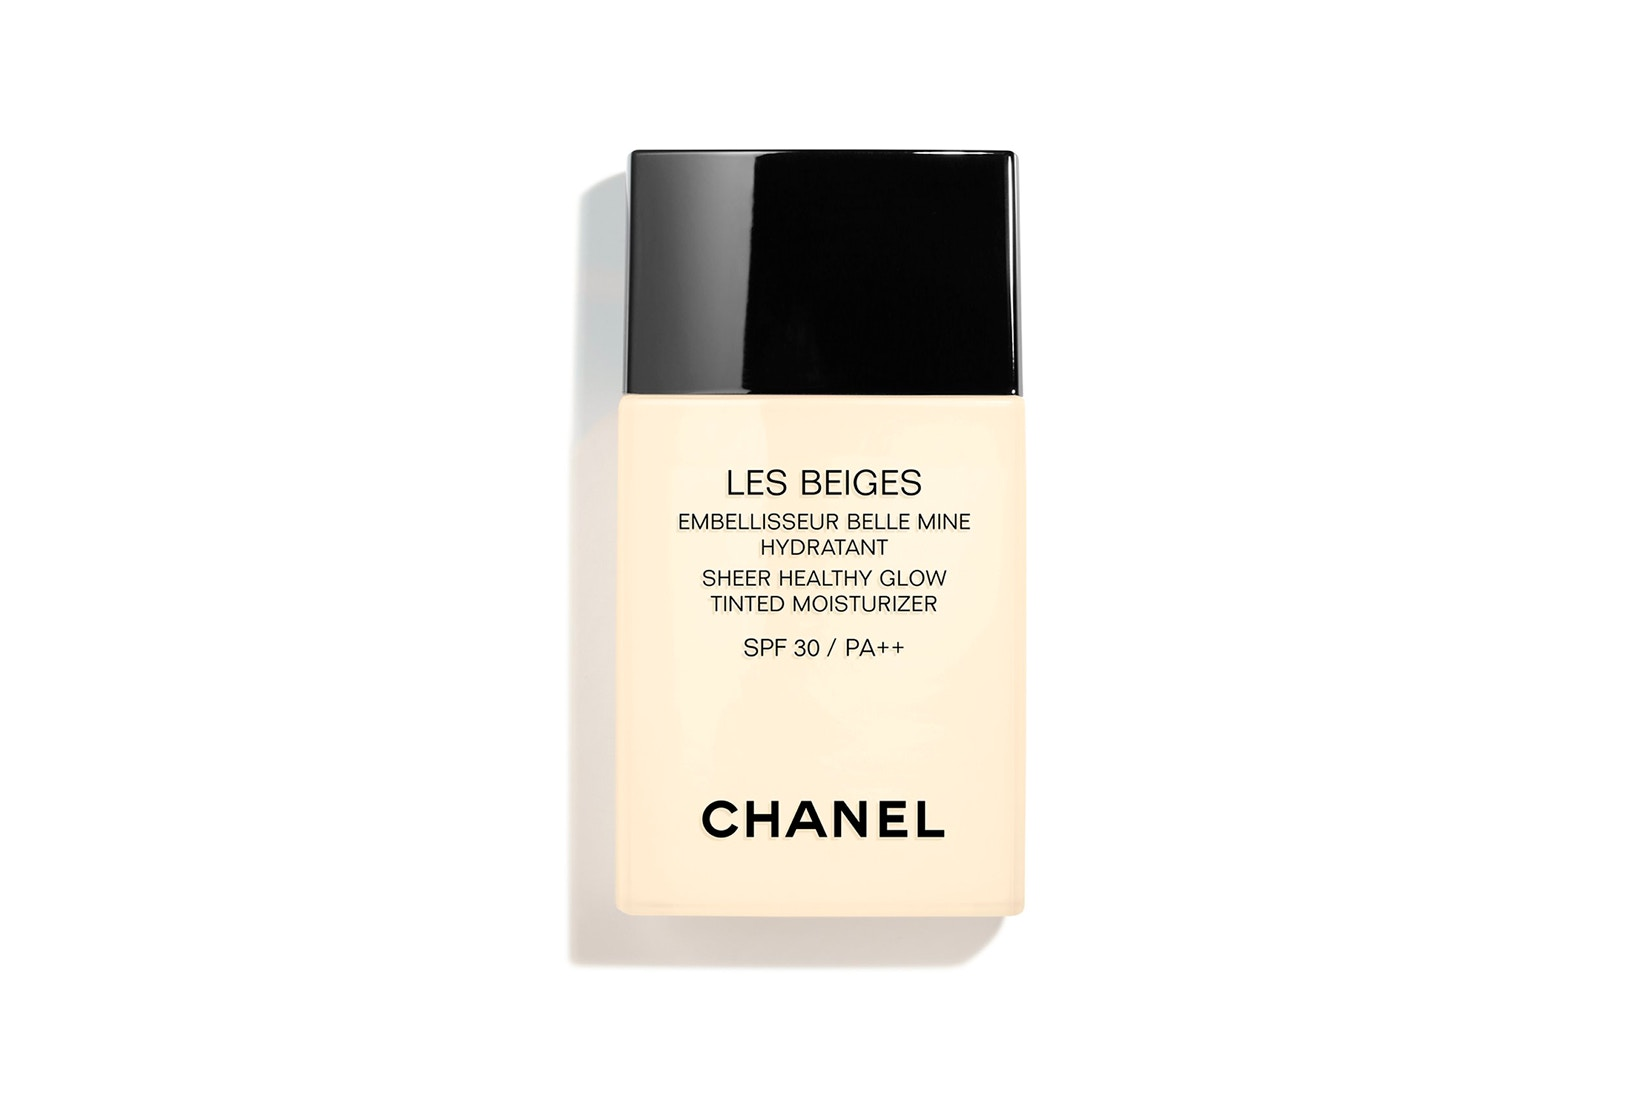 Les Beiges 2018, makeup trends 2018, collection 2018, Chanel cosmetics, French fashion house, Chanel, Les Beiges Sheer Healthy Glow Tinted Moisturizer, Les Beiges Healthy Glow Luminous Multi-Color Powder, healthy glow skin, light tan, Côte d'Azur, The Les Beiges Healthy Glow Sheer Colour Stick, make-up artist, natural shimmer, Les Beiges Healthy Glow Natural Eyeshadow Palette, lip balm, chanel lip balm, les beiges 2018 chanel, anna andres blog, anna andres instagram KKW Beauty x Mario: new beauty products from Kim Kardashian Makeup 04 04 KKW BEAUTY X MARIO: NEW BEAUTY PRODUCTS FROM KIM KARDASHIAN Reality-diva Kim Kardashian, along with her favorite make-up artist Mario Dedivanovic, announced the new cosmetics line. Make-up tendencies fall-winter 2018 Makeup 26 03 MAKE-UP TENDENCIES FALL-WINTER 2018 Make-up world is at the point of changes: balance for the style coincidence is the main tendency of fall in 2018.